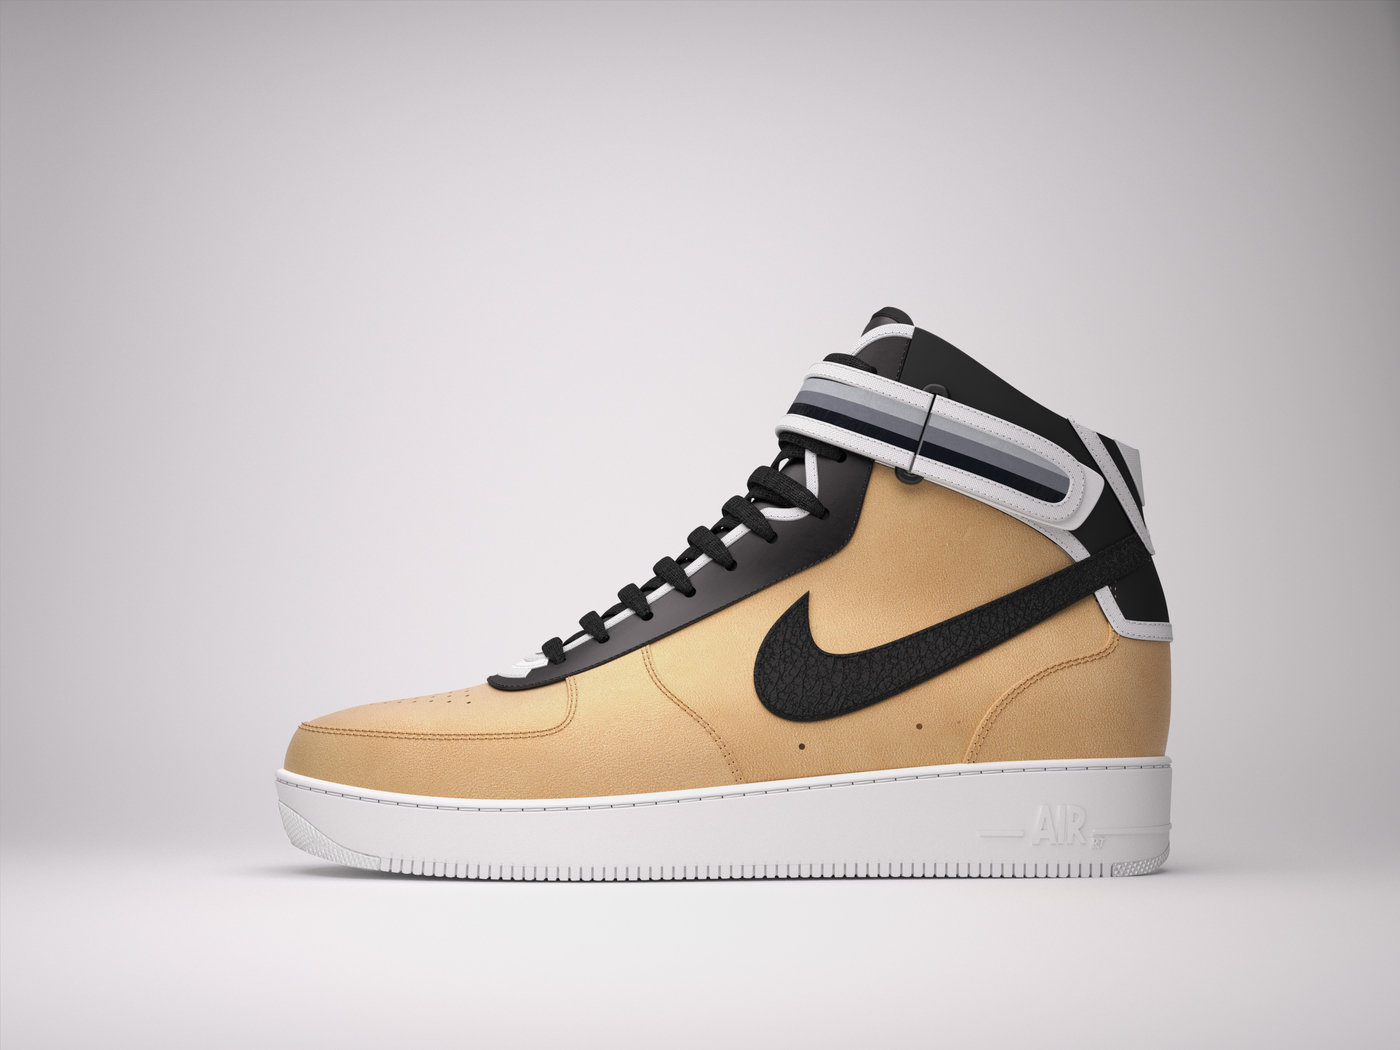 3D model Nike Air Force1 RT by Israel Corral at Coroflot com